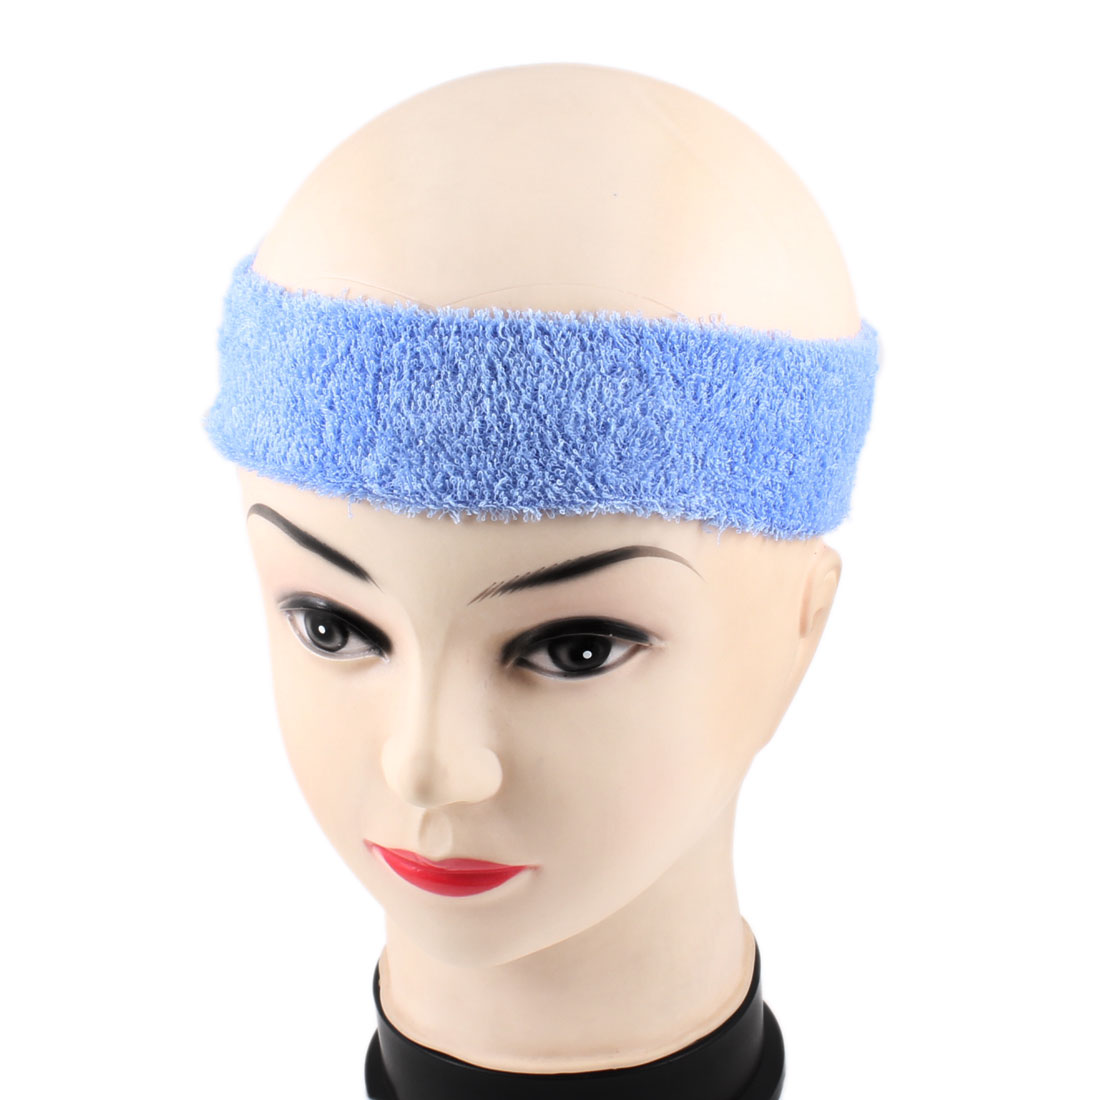 Outdoor Activity Exercise Stretchy Protective Head Band Light Blue for Adult